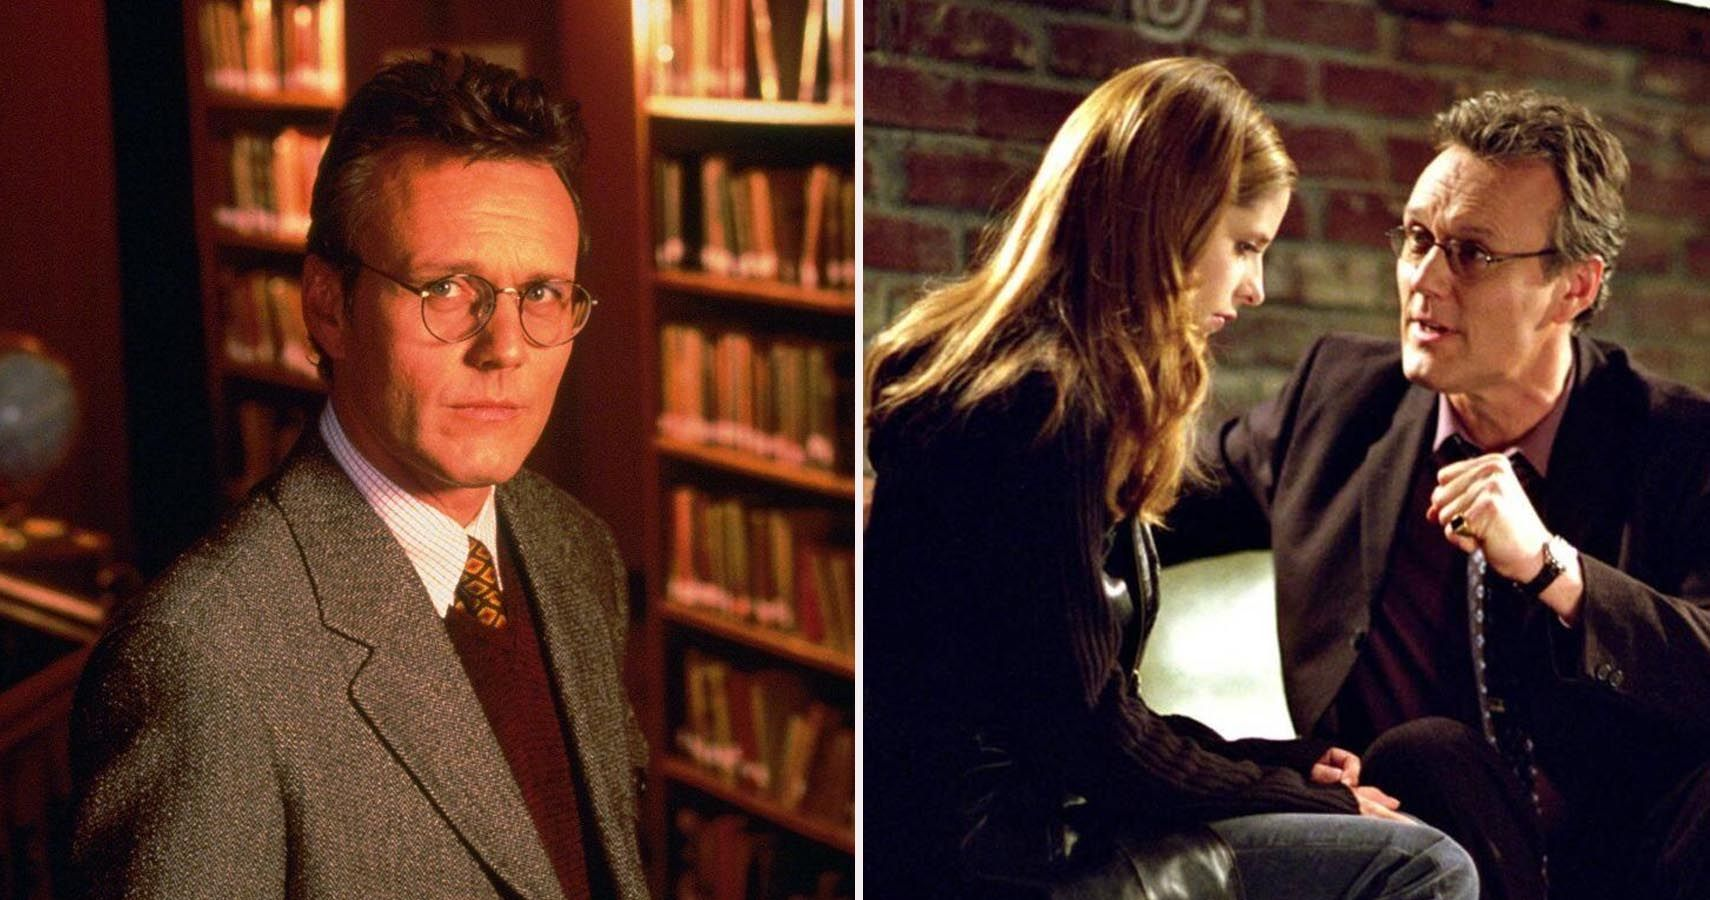 Buffy The Vampire Slayer: 10 Things About Giles That Would Never Fly Today